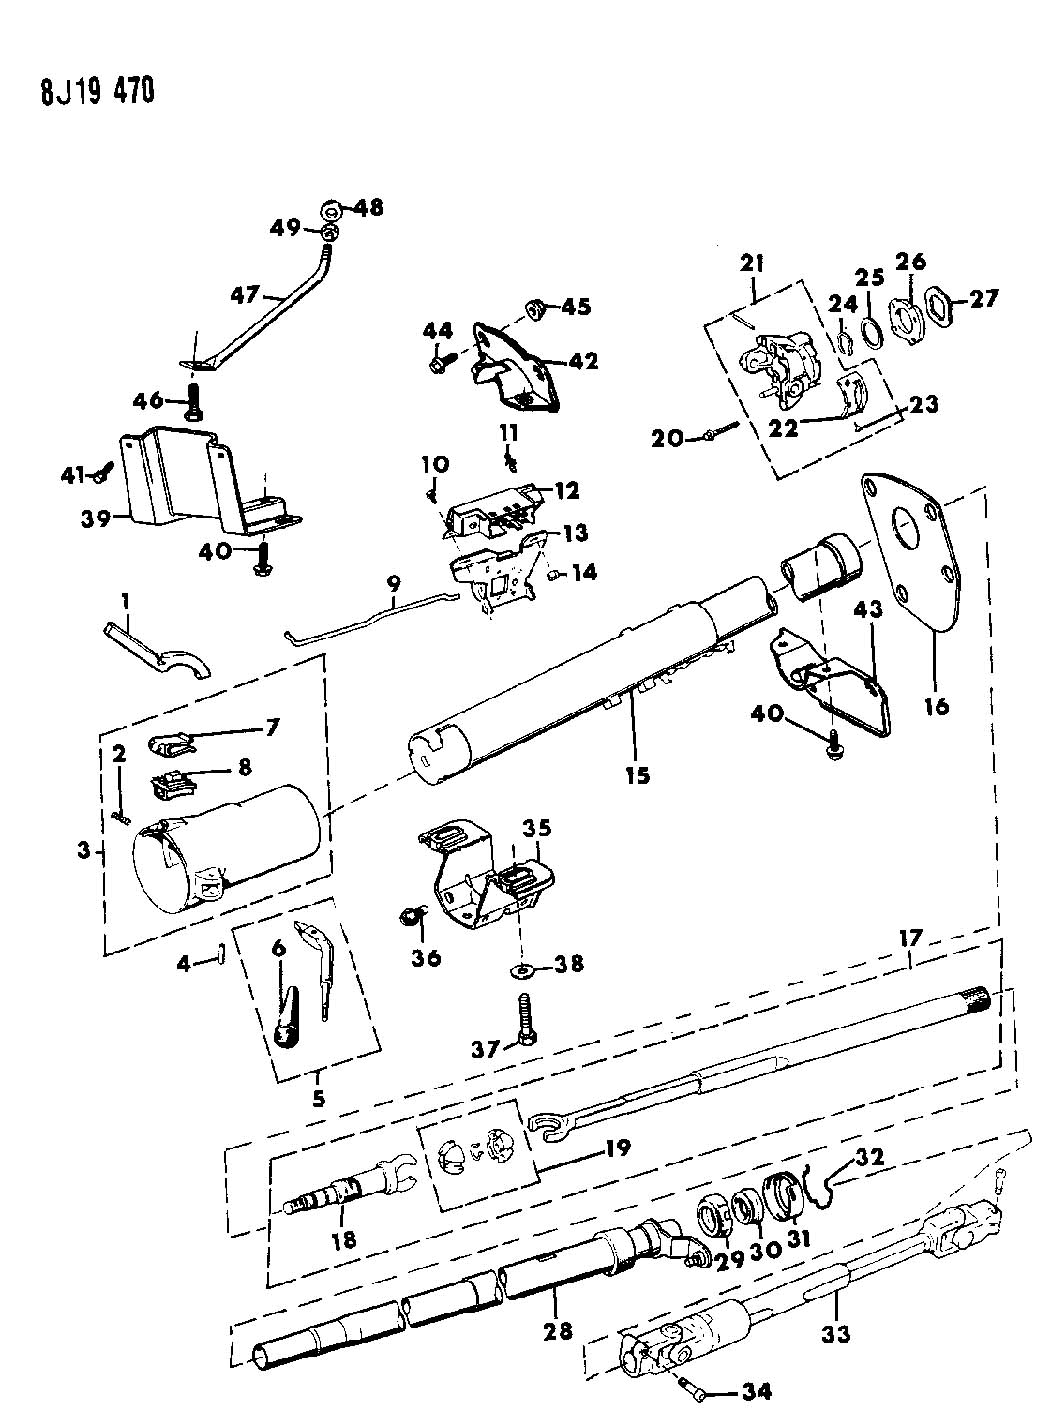 HOUSING STEERING COLUMN LOWER W/COLUMN GEAR SHIFT, W/TILT